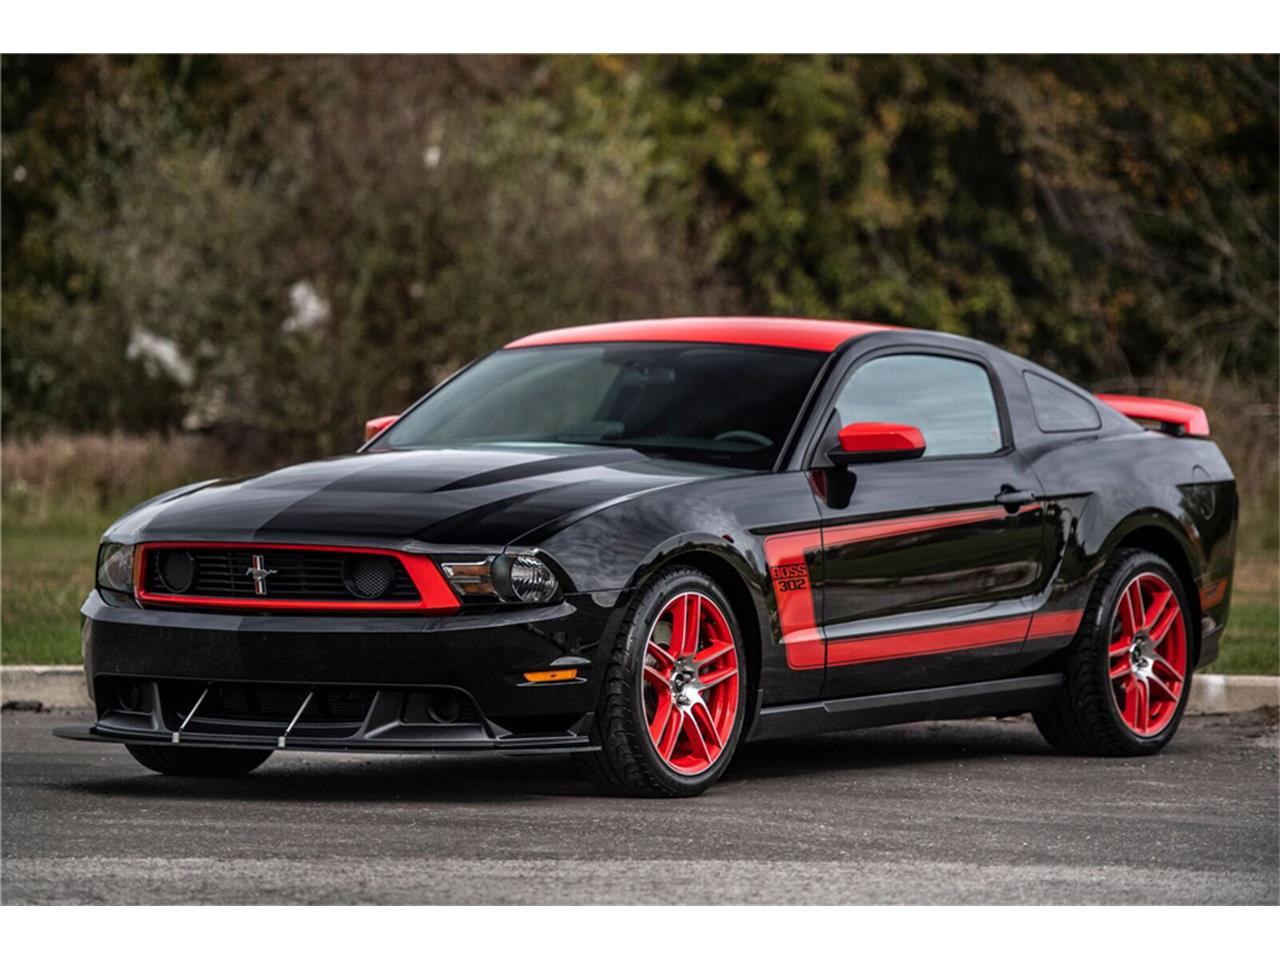 2012 ford mustang boss 302 for sale classiccars com cc 1170191